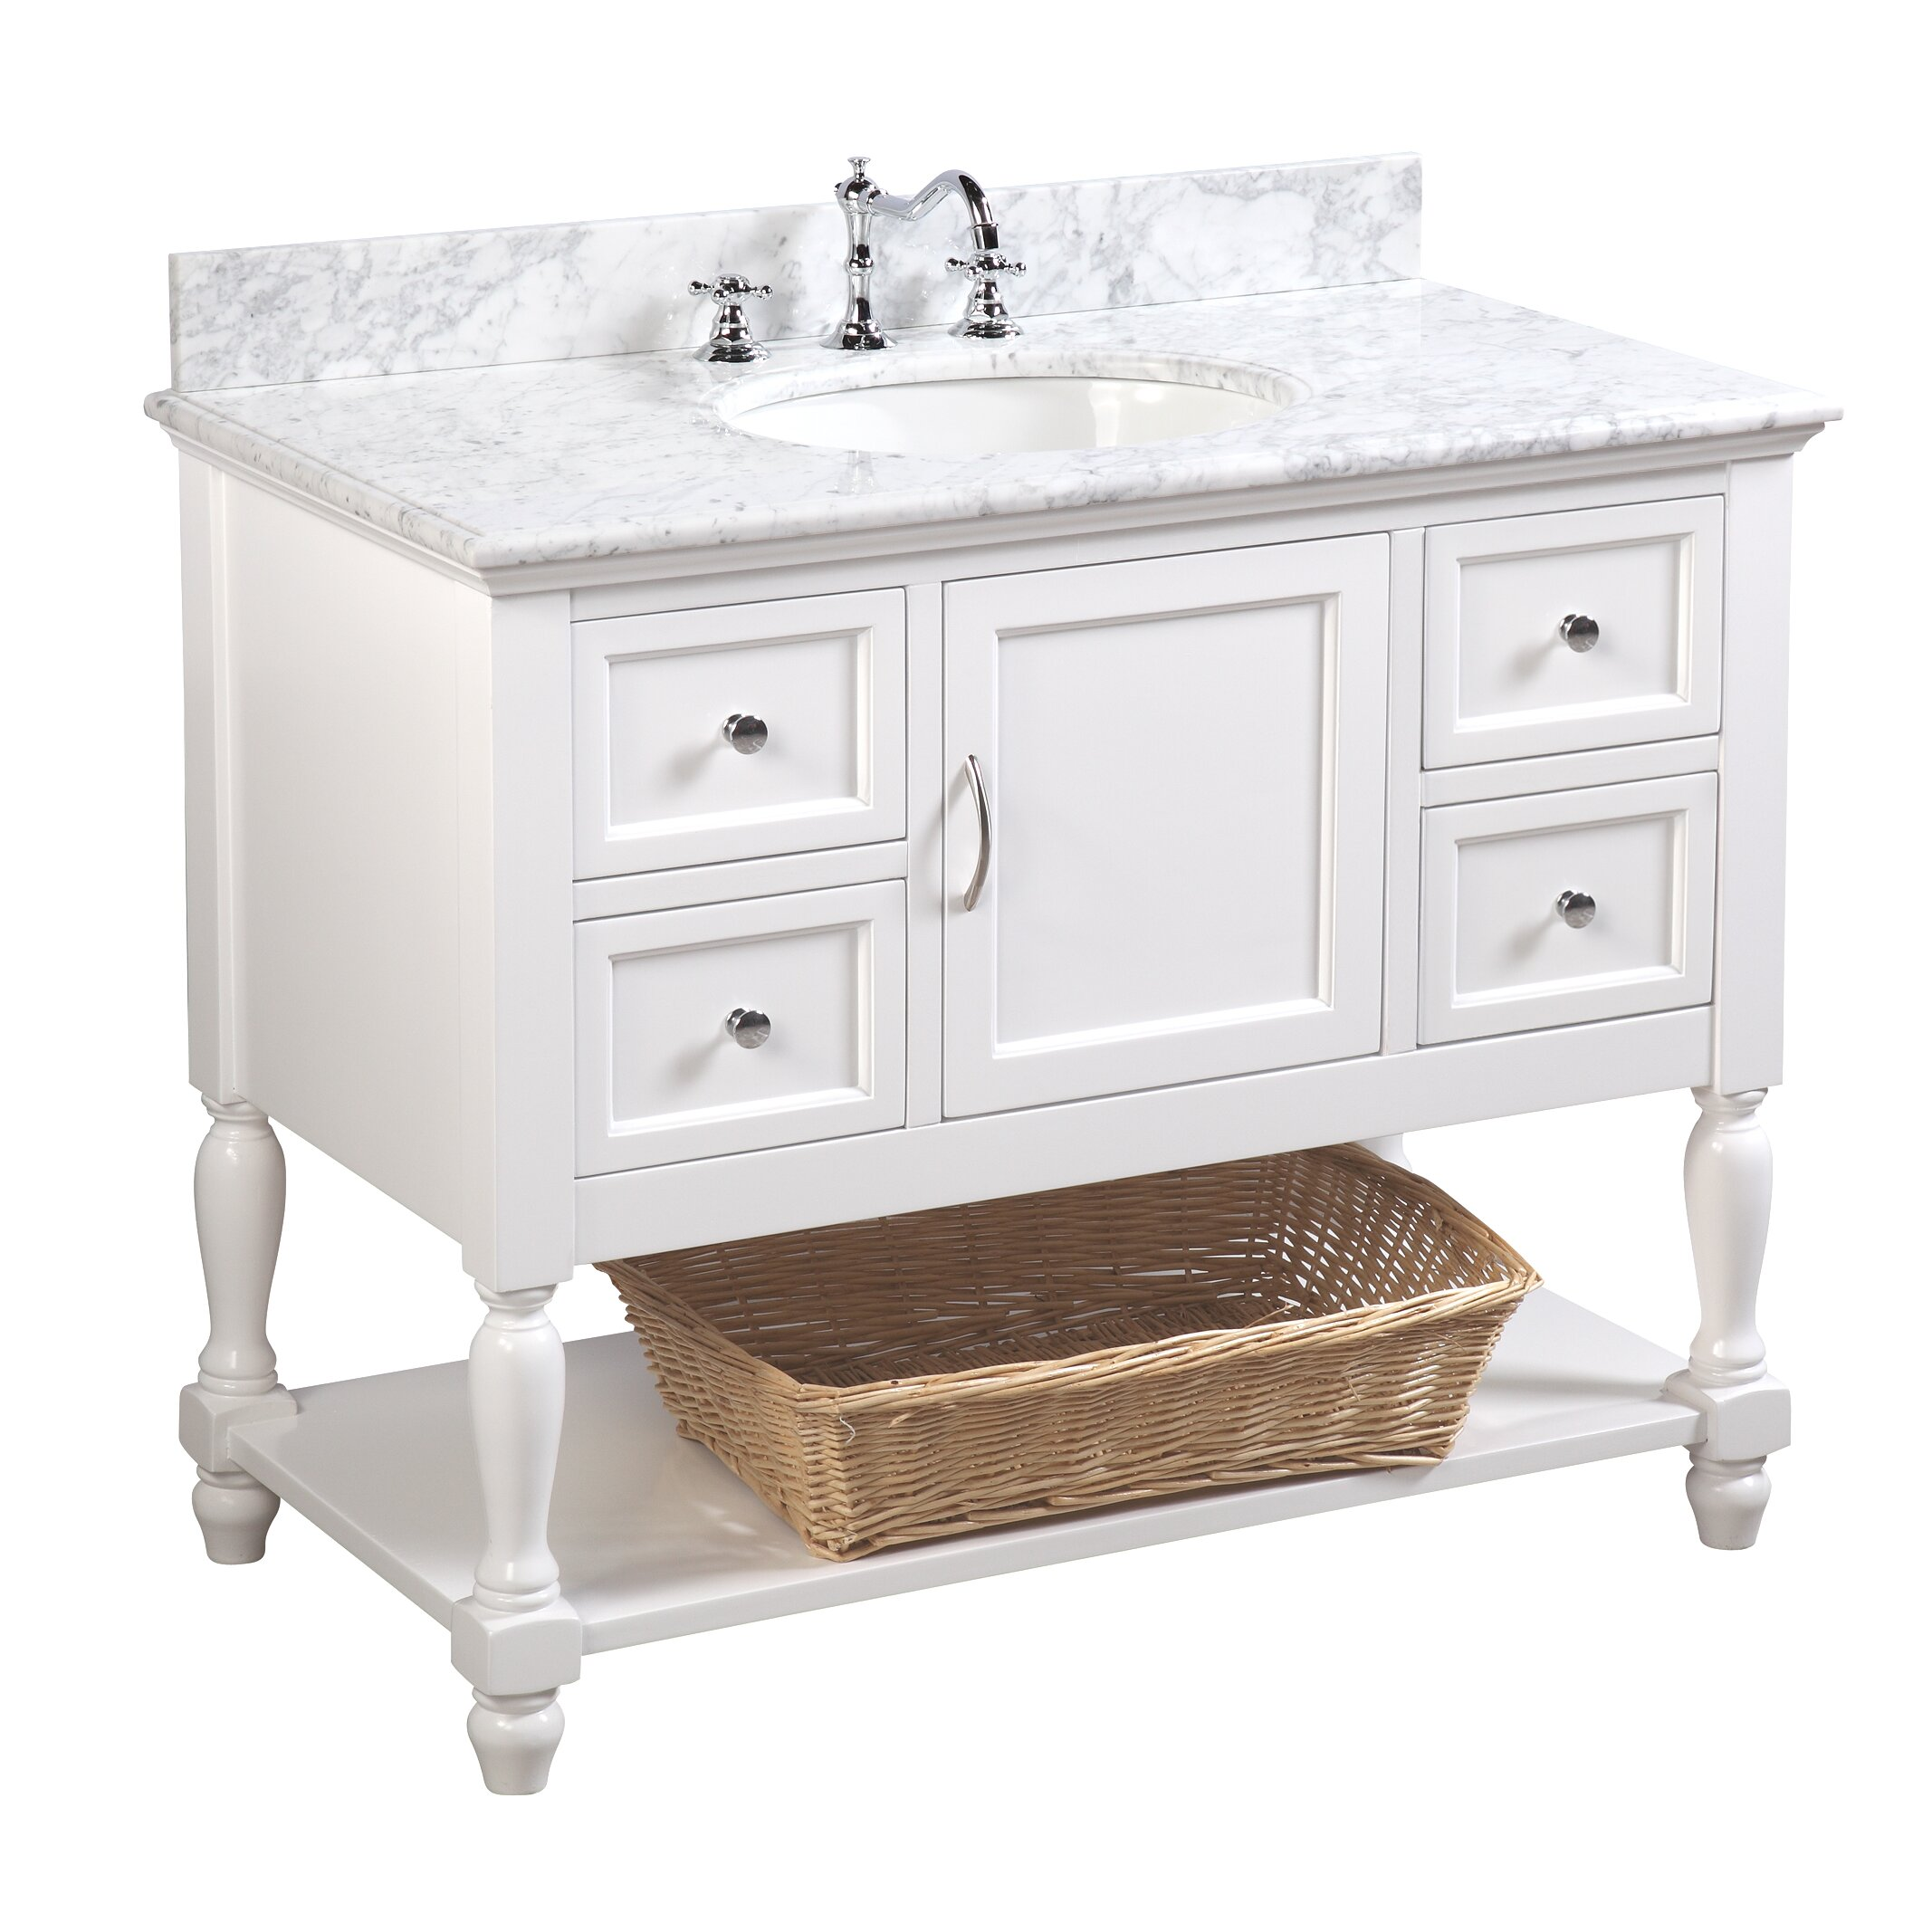 42 Bathroom Vanity Kbc Beverly 42 Single Bathroom Vanity Set Reviews Wayfair